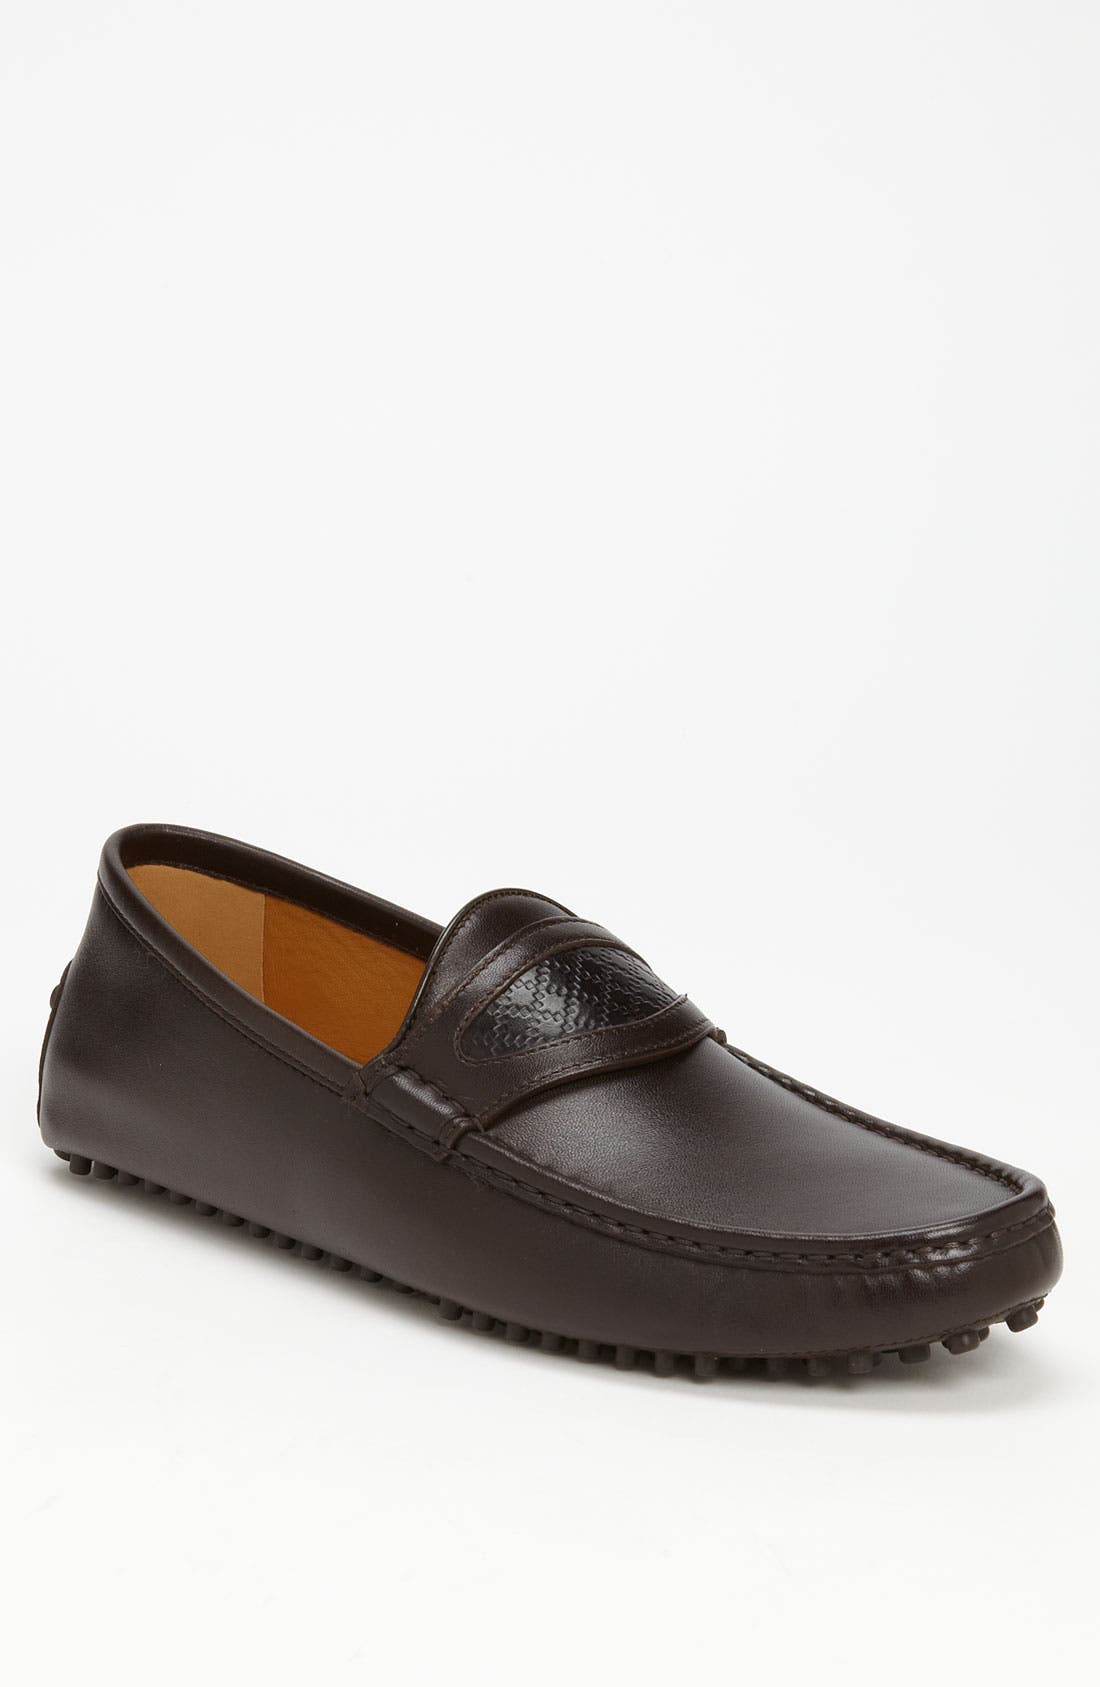 Alternate Image 1 Selected - Gucci 'Auger' Driving Shoe